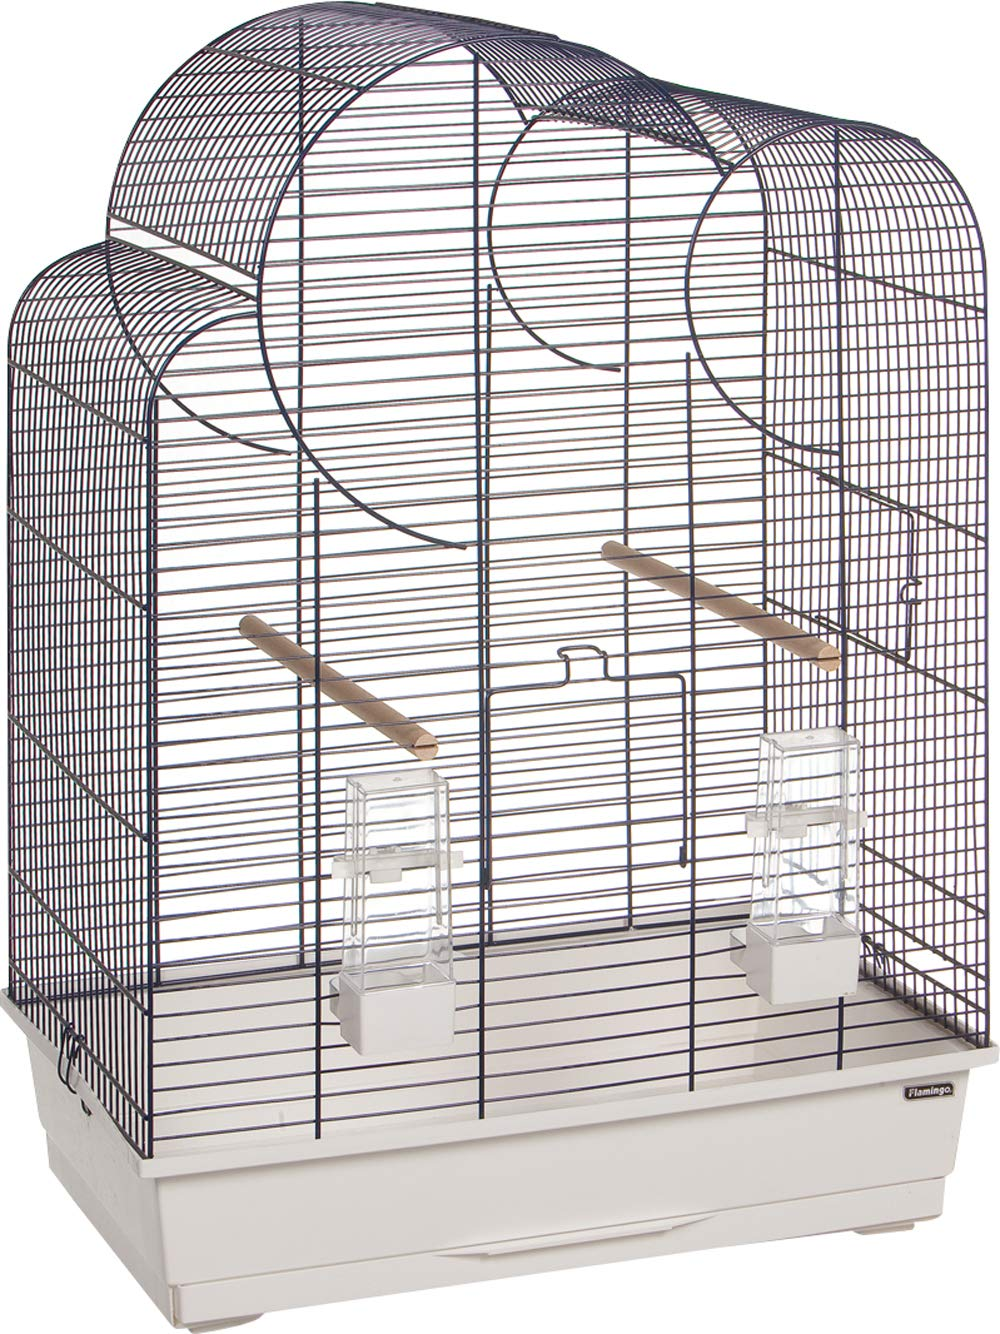 Flamingo Wammer Budgie Cage White bluee